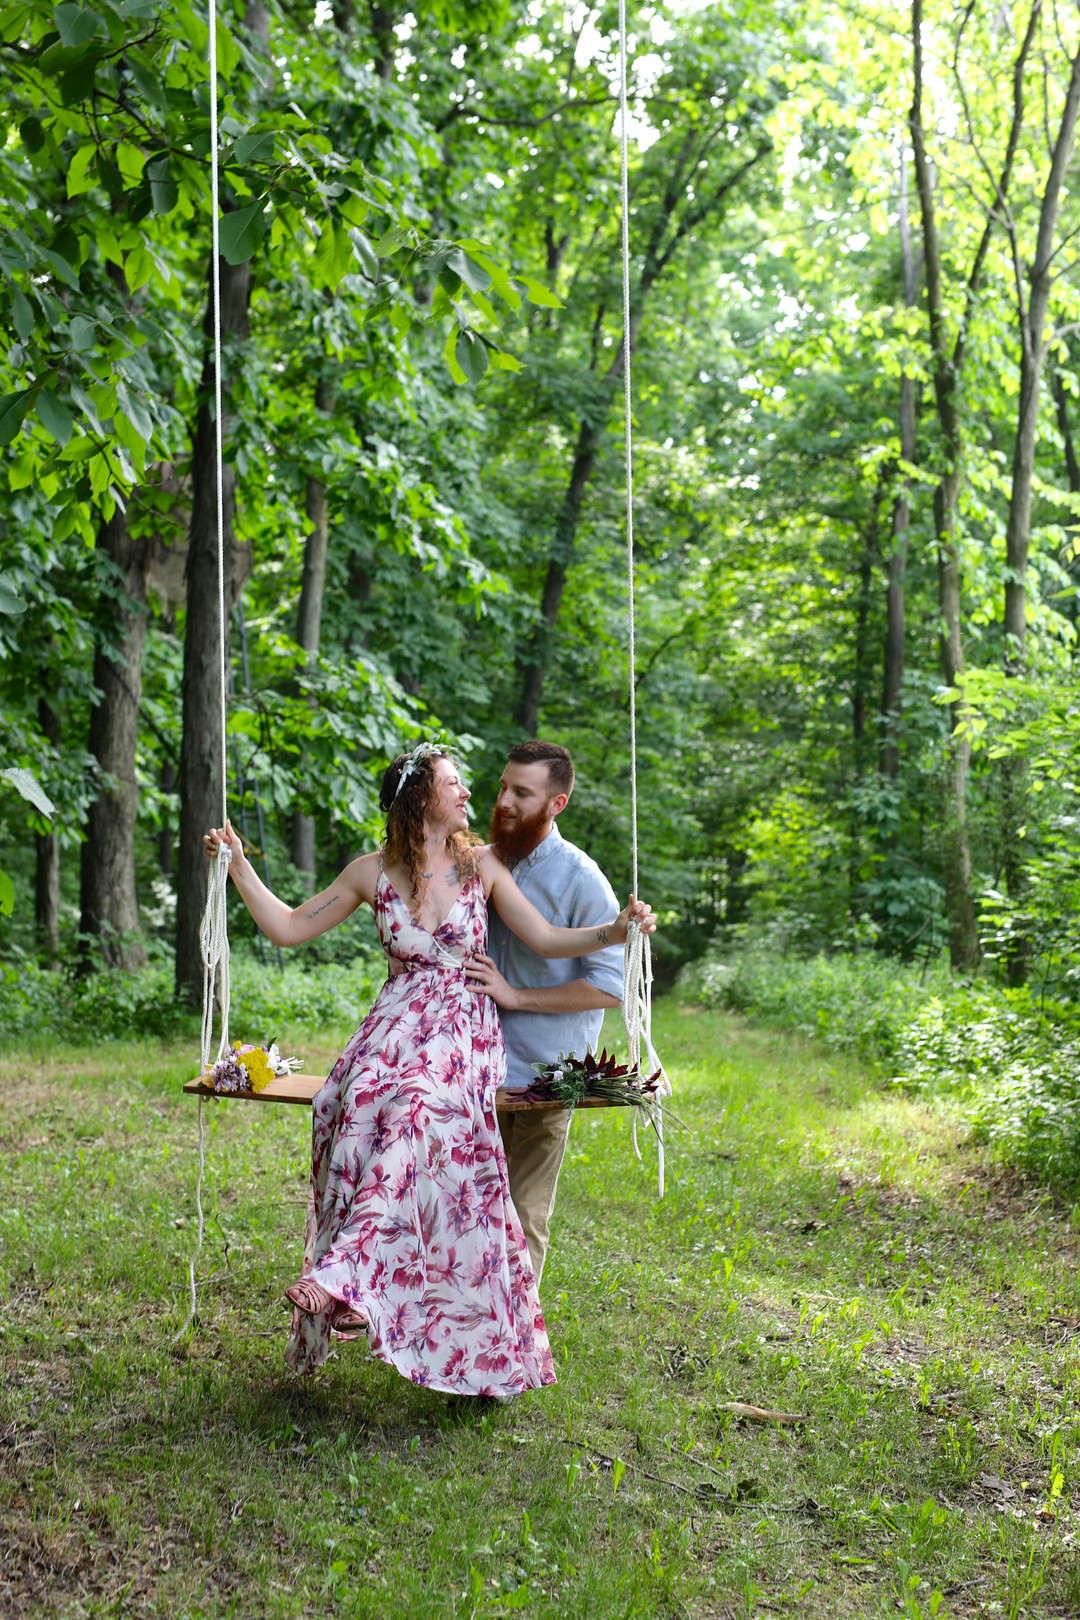 Romantic garden engagement session captured by Messy Photography. See more engagement photo ideas at CHItheeWED.com!